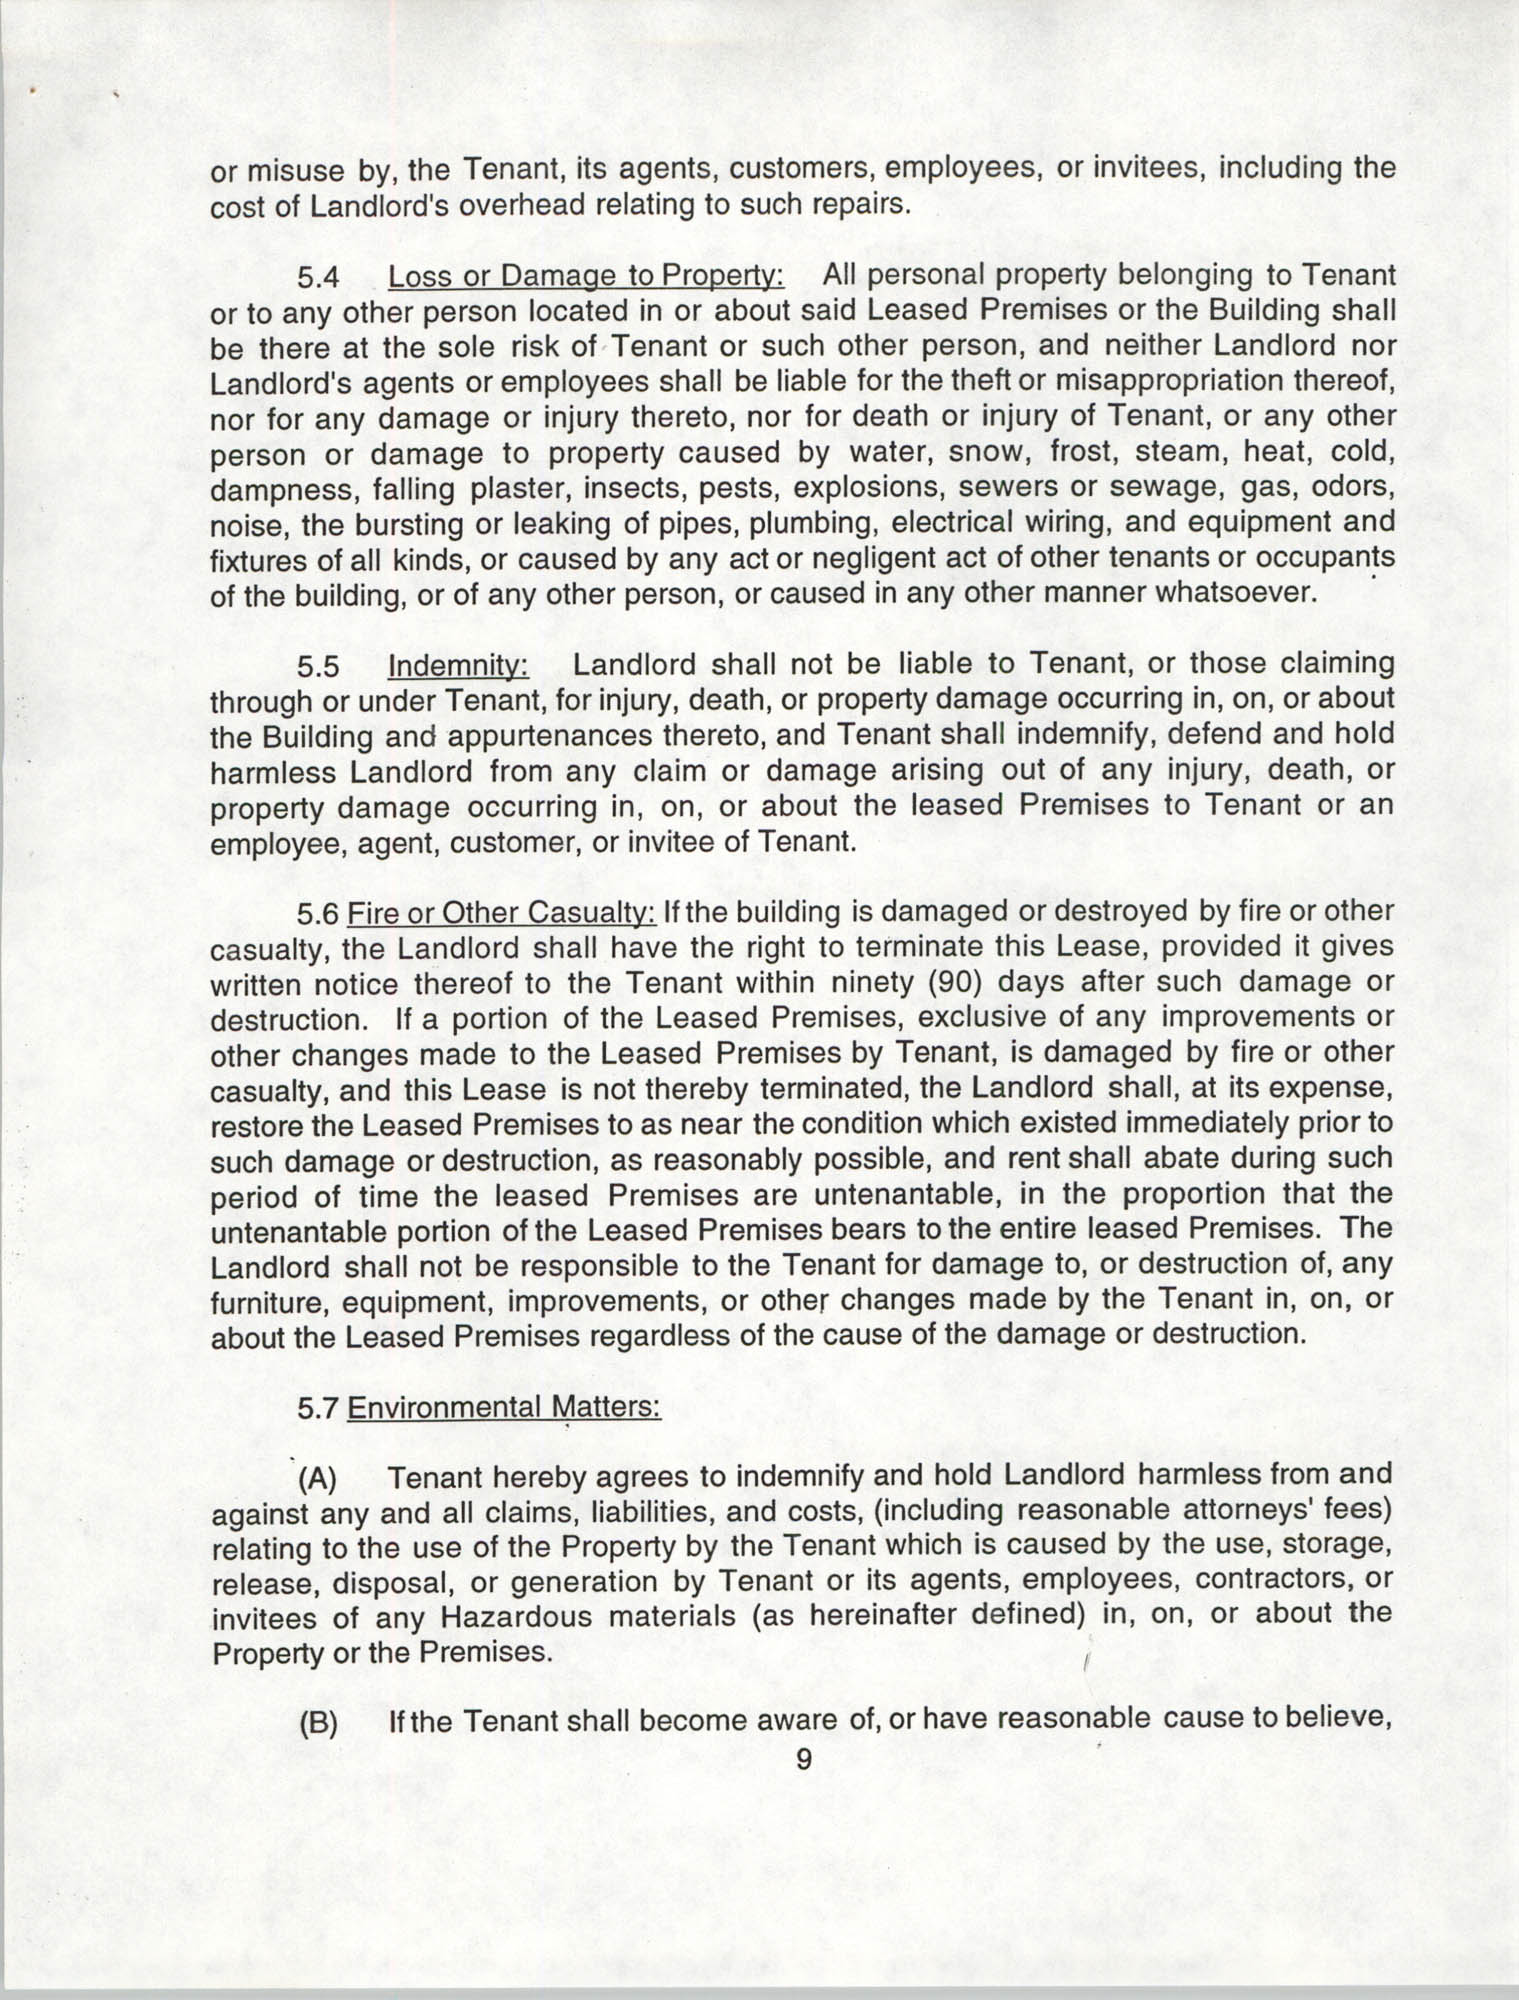 Charleston Branch of the NAACP Leasing Agreement, July 1994 to June 1995, Page 9